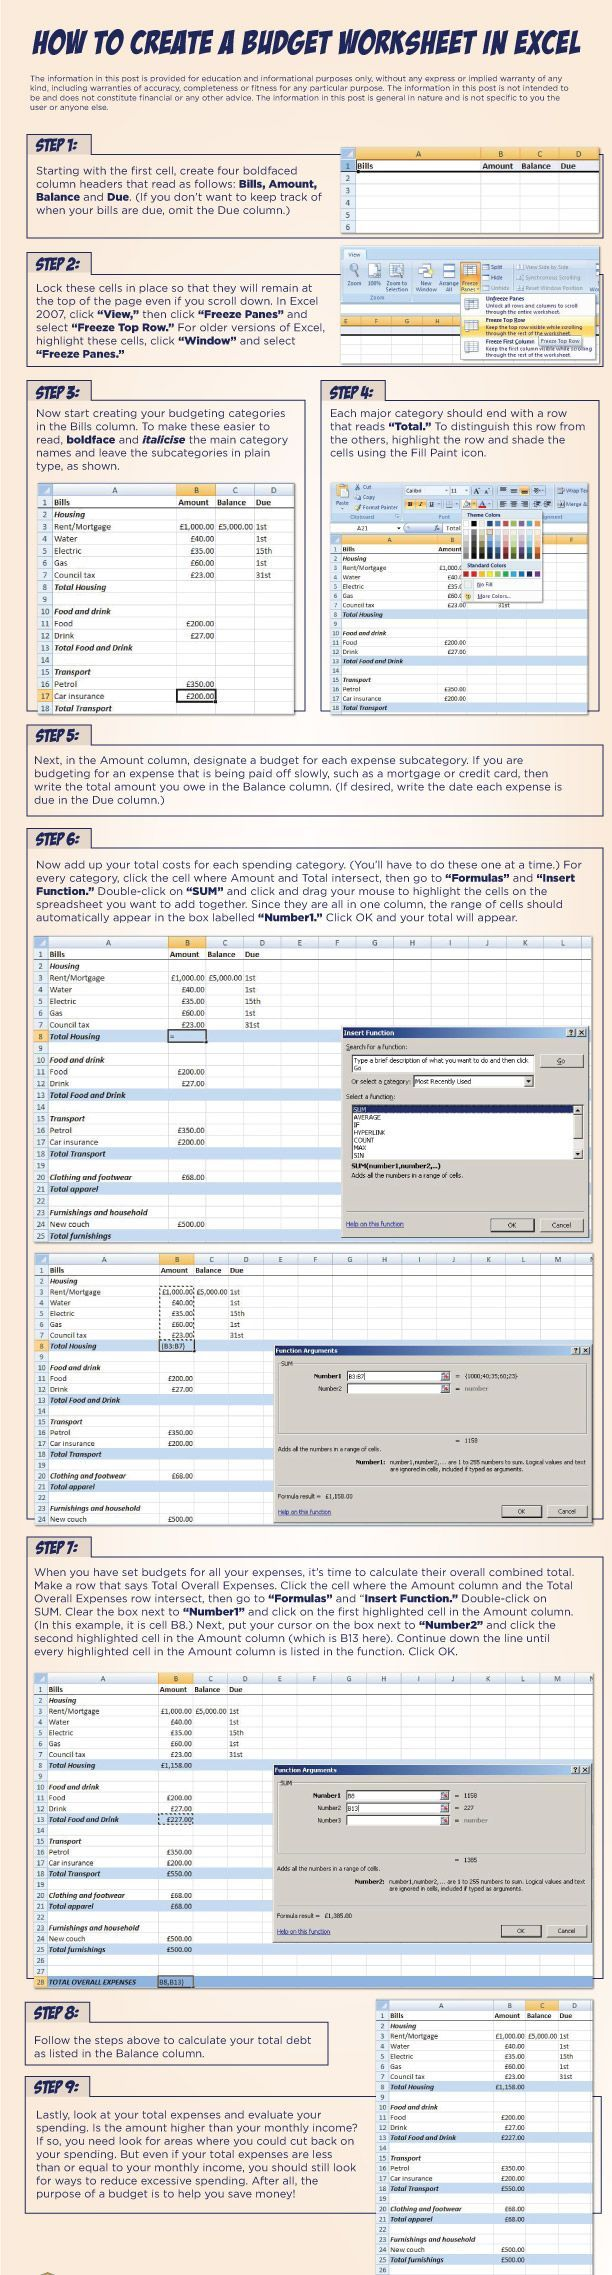 9 step by step instructions on how to create a budget worksheet in excel www.quickquid.co.uk/quid-corner/2012/07/05/how-to-create-a-budget-worksheet-in-excel/ Budgeting, #Budget, Budget Tips